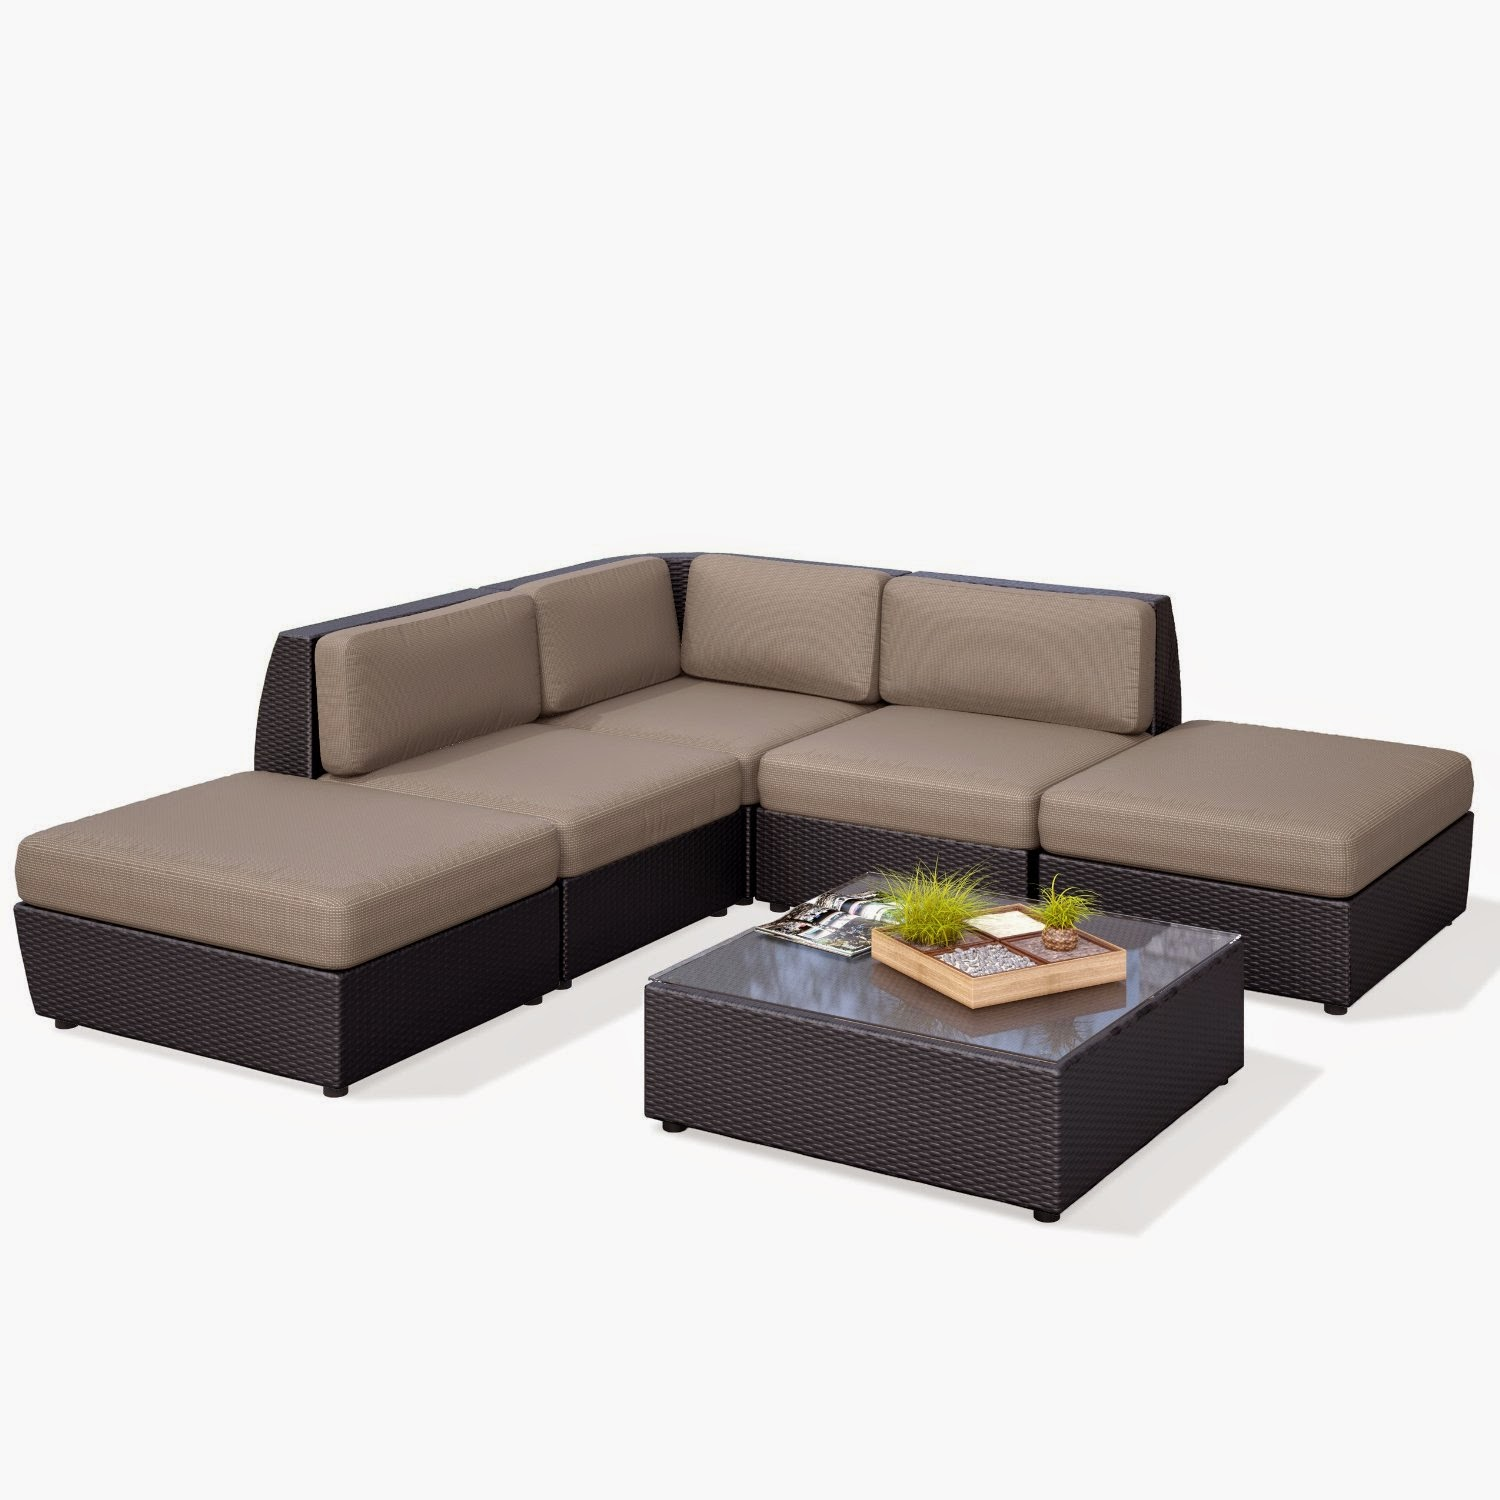 Curved sofa couch for sale large curved corner sofas for Sofa sofa furniture